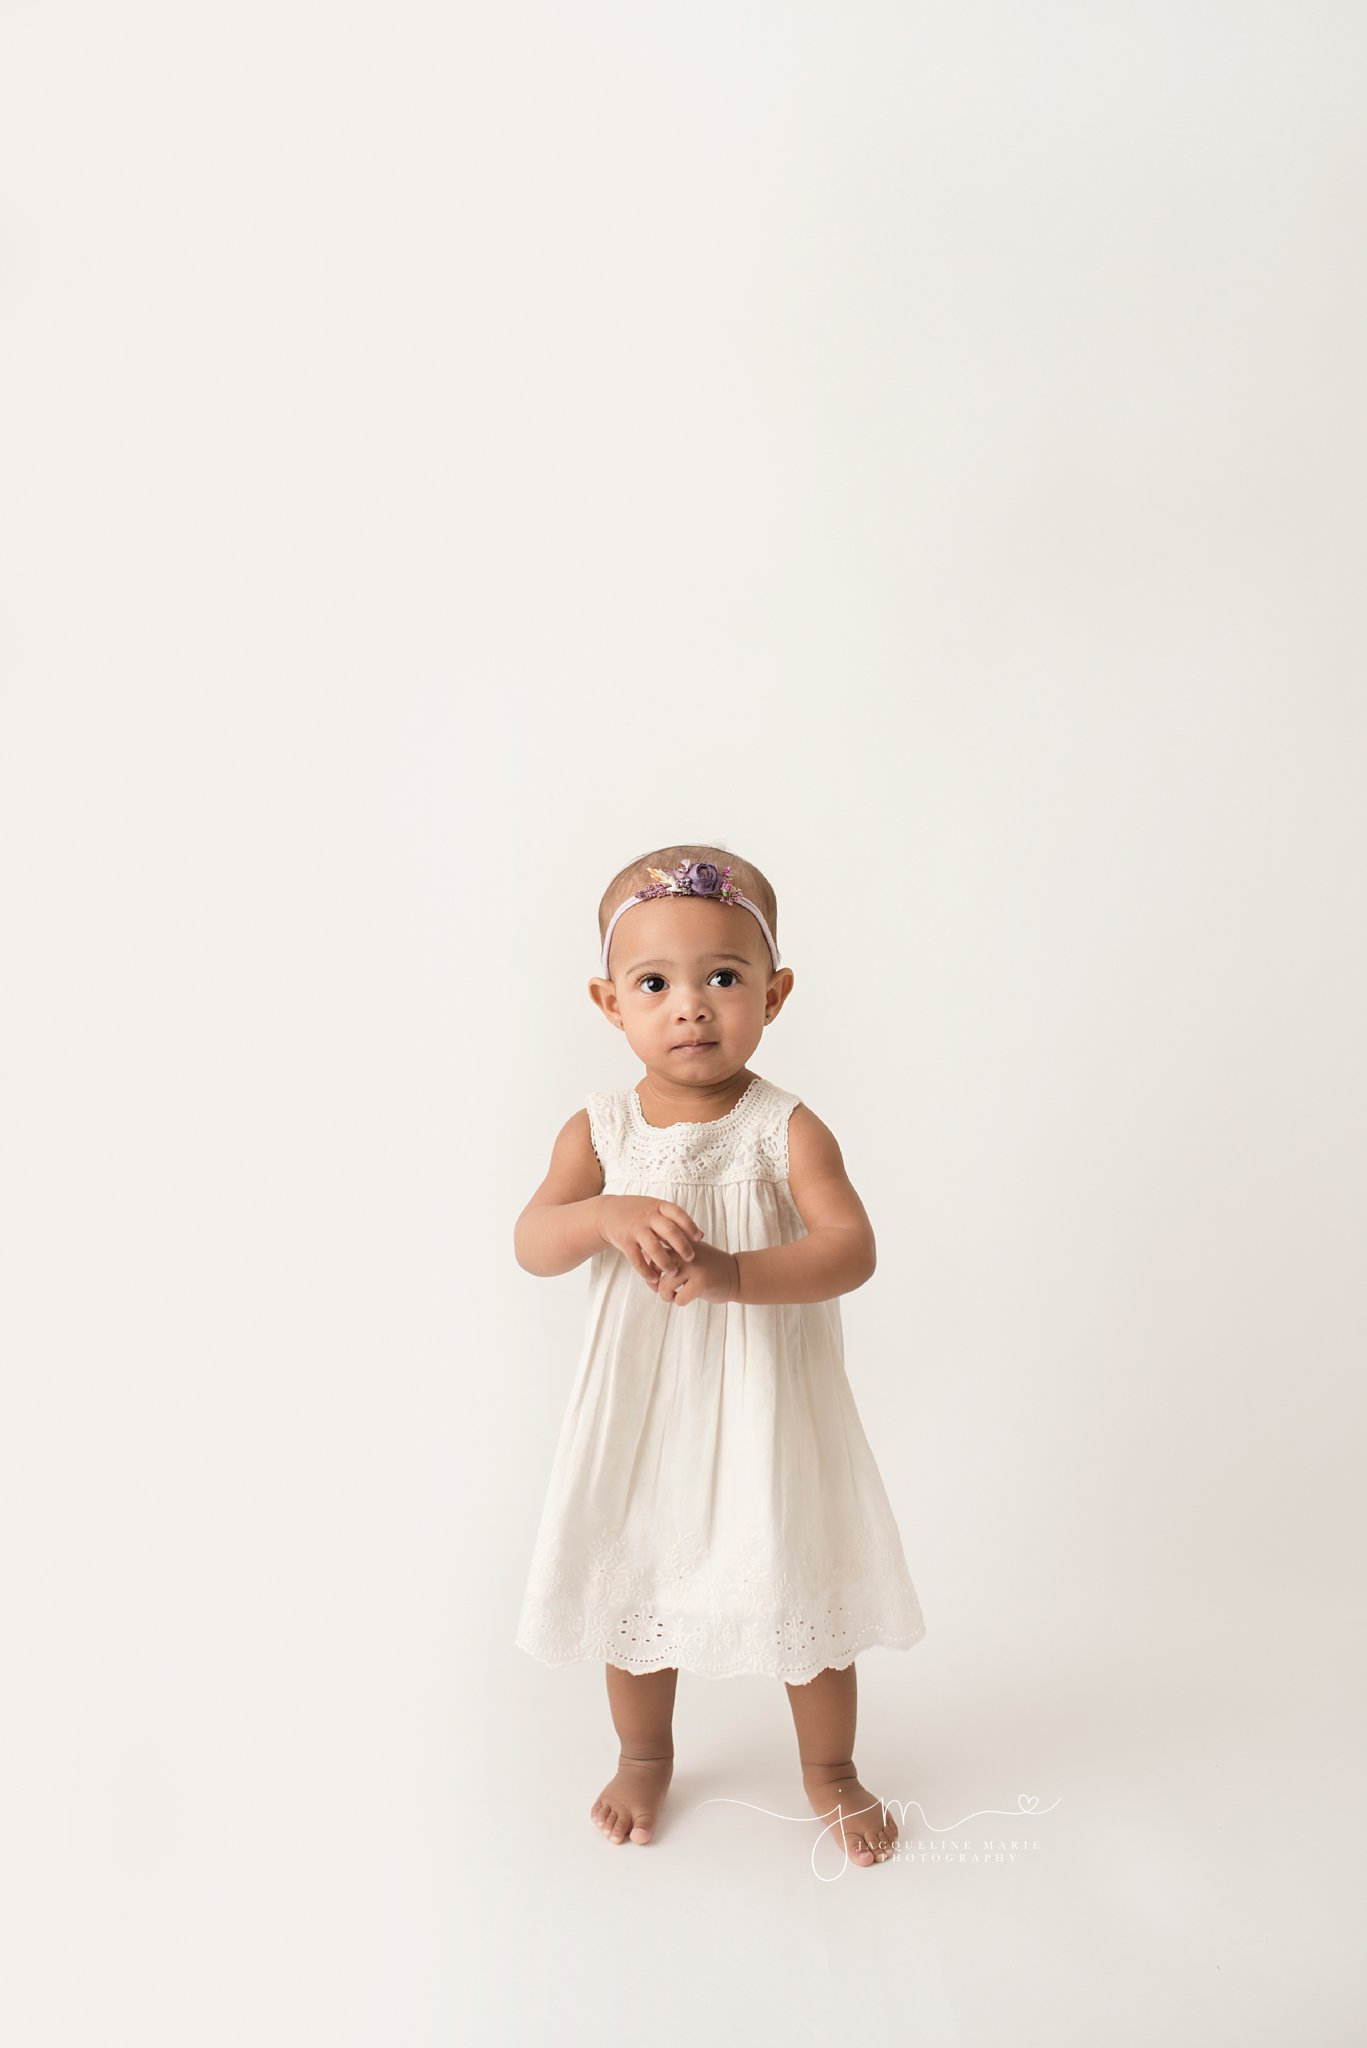 columbus ohio 1 year old wears white dress for while standing at portrait studio for first birthday pictures